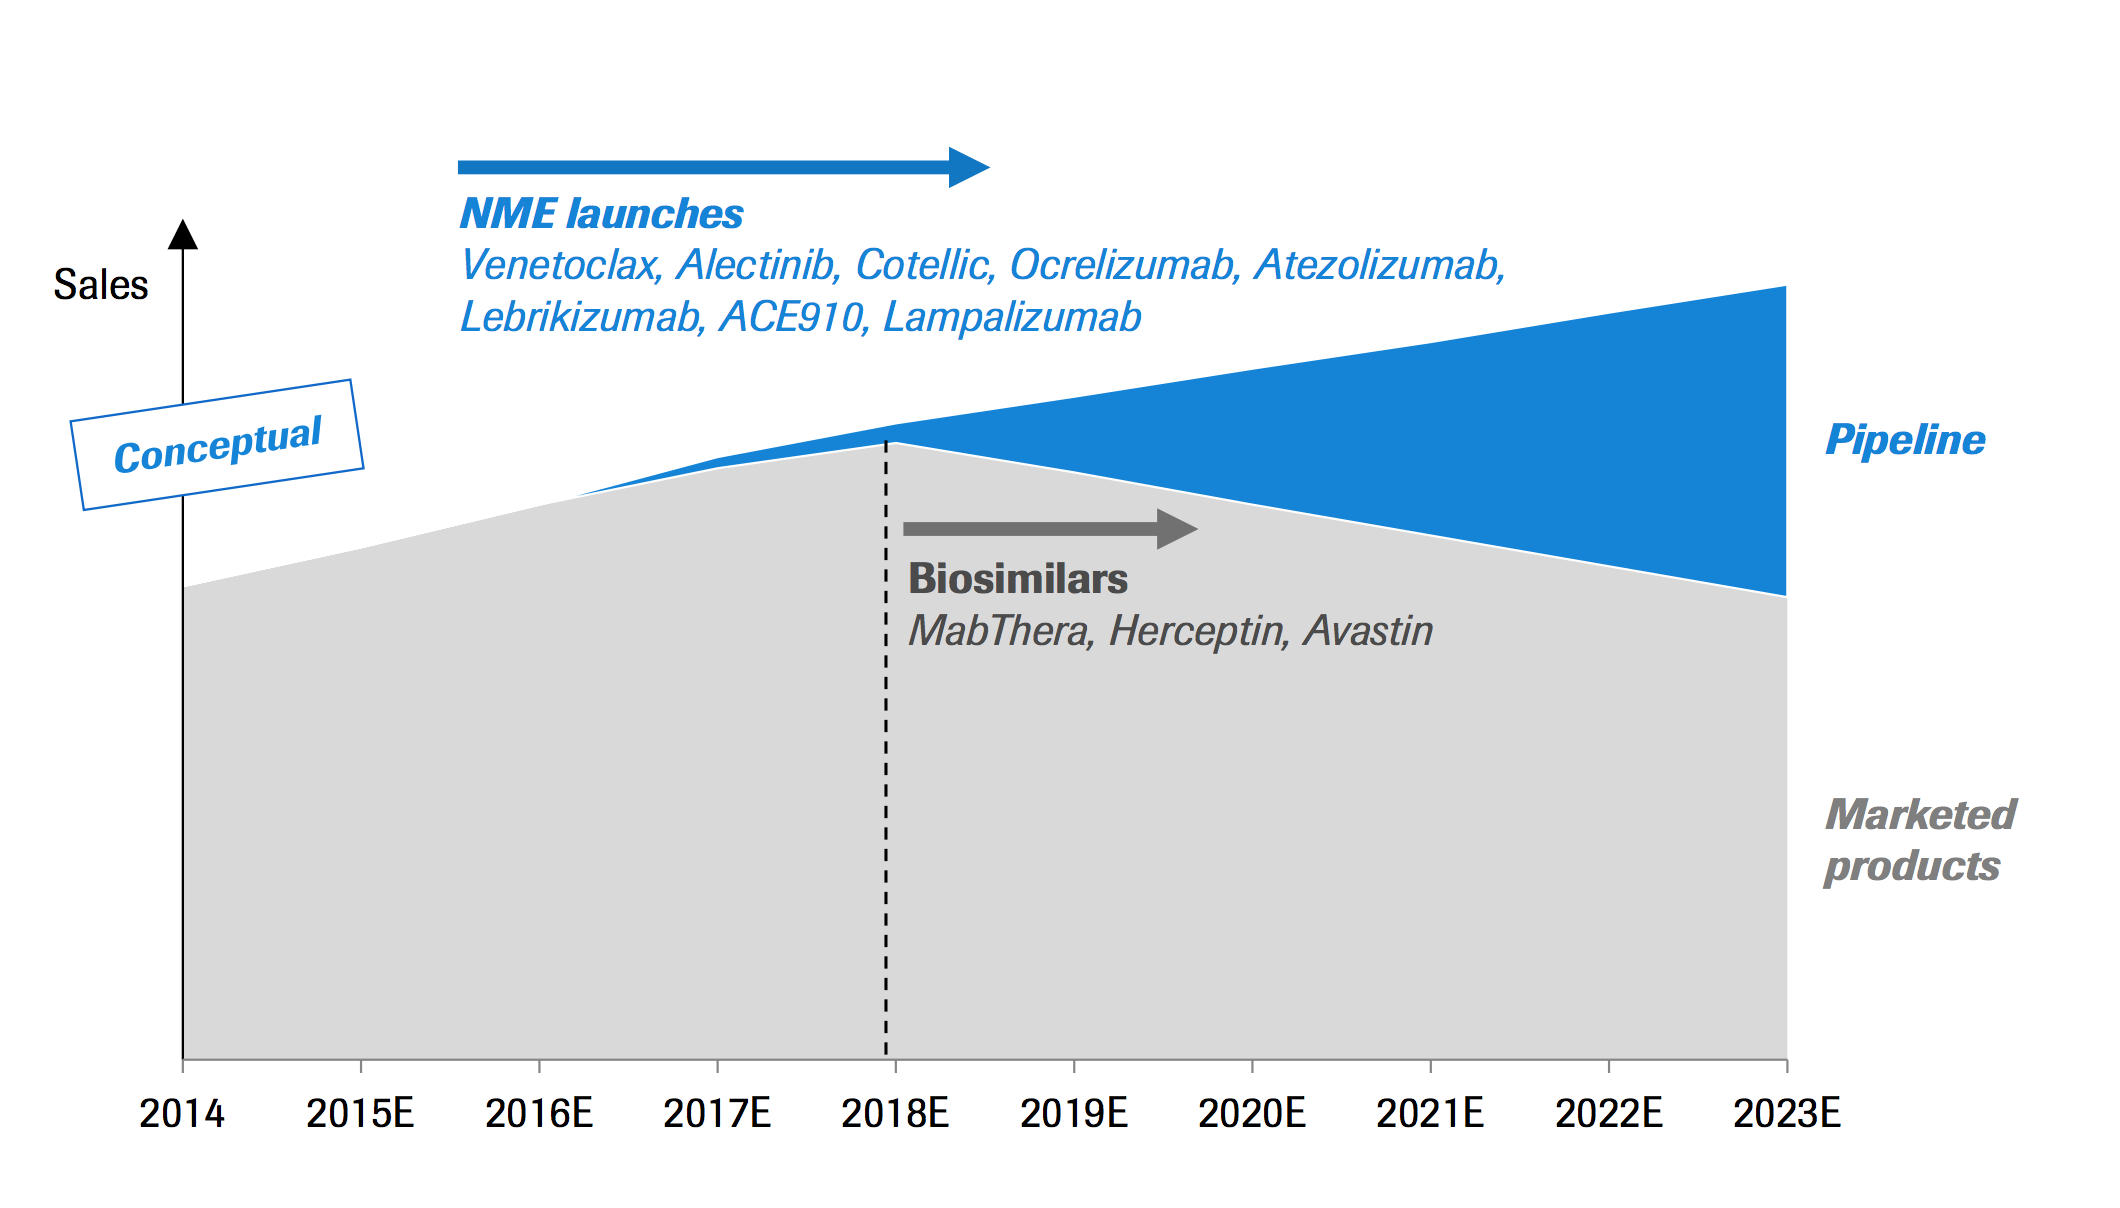 The chart from Roche's presentation at the J.P. Morgan Healthcare Conference demonstrates how biosimilars are expected to affect sales in coming years.